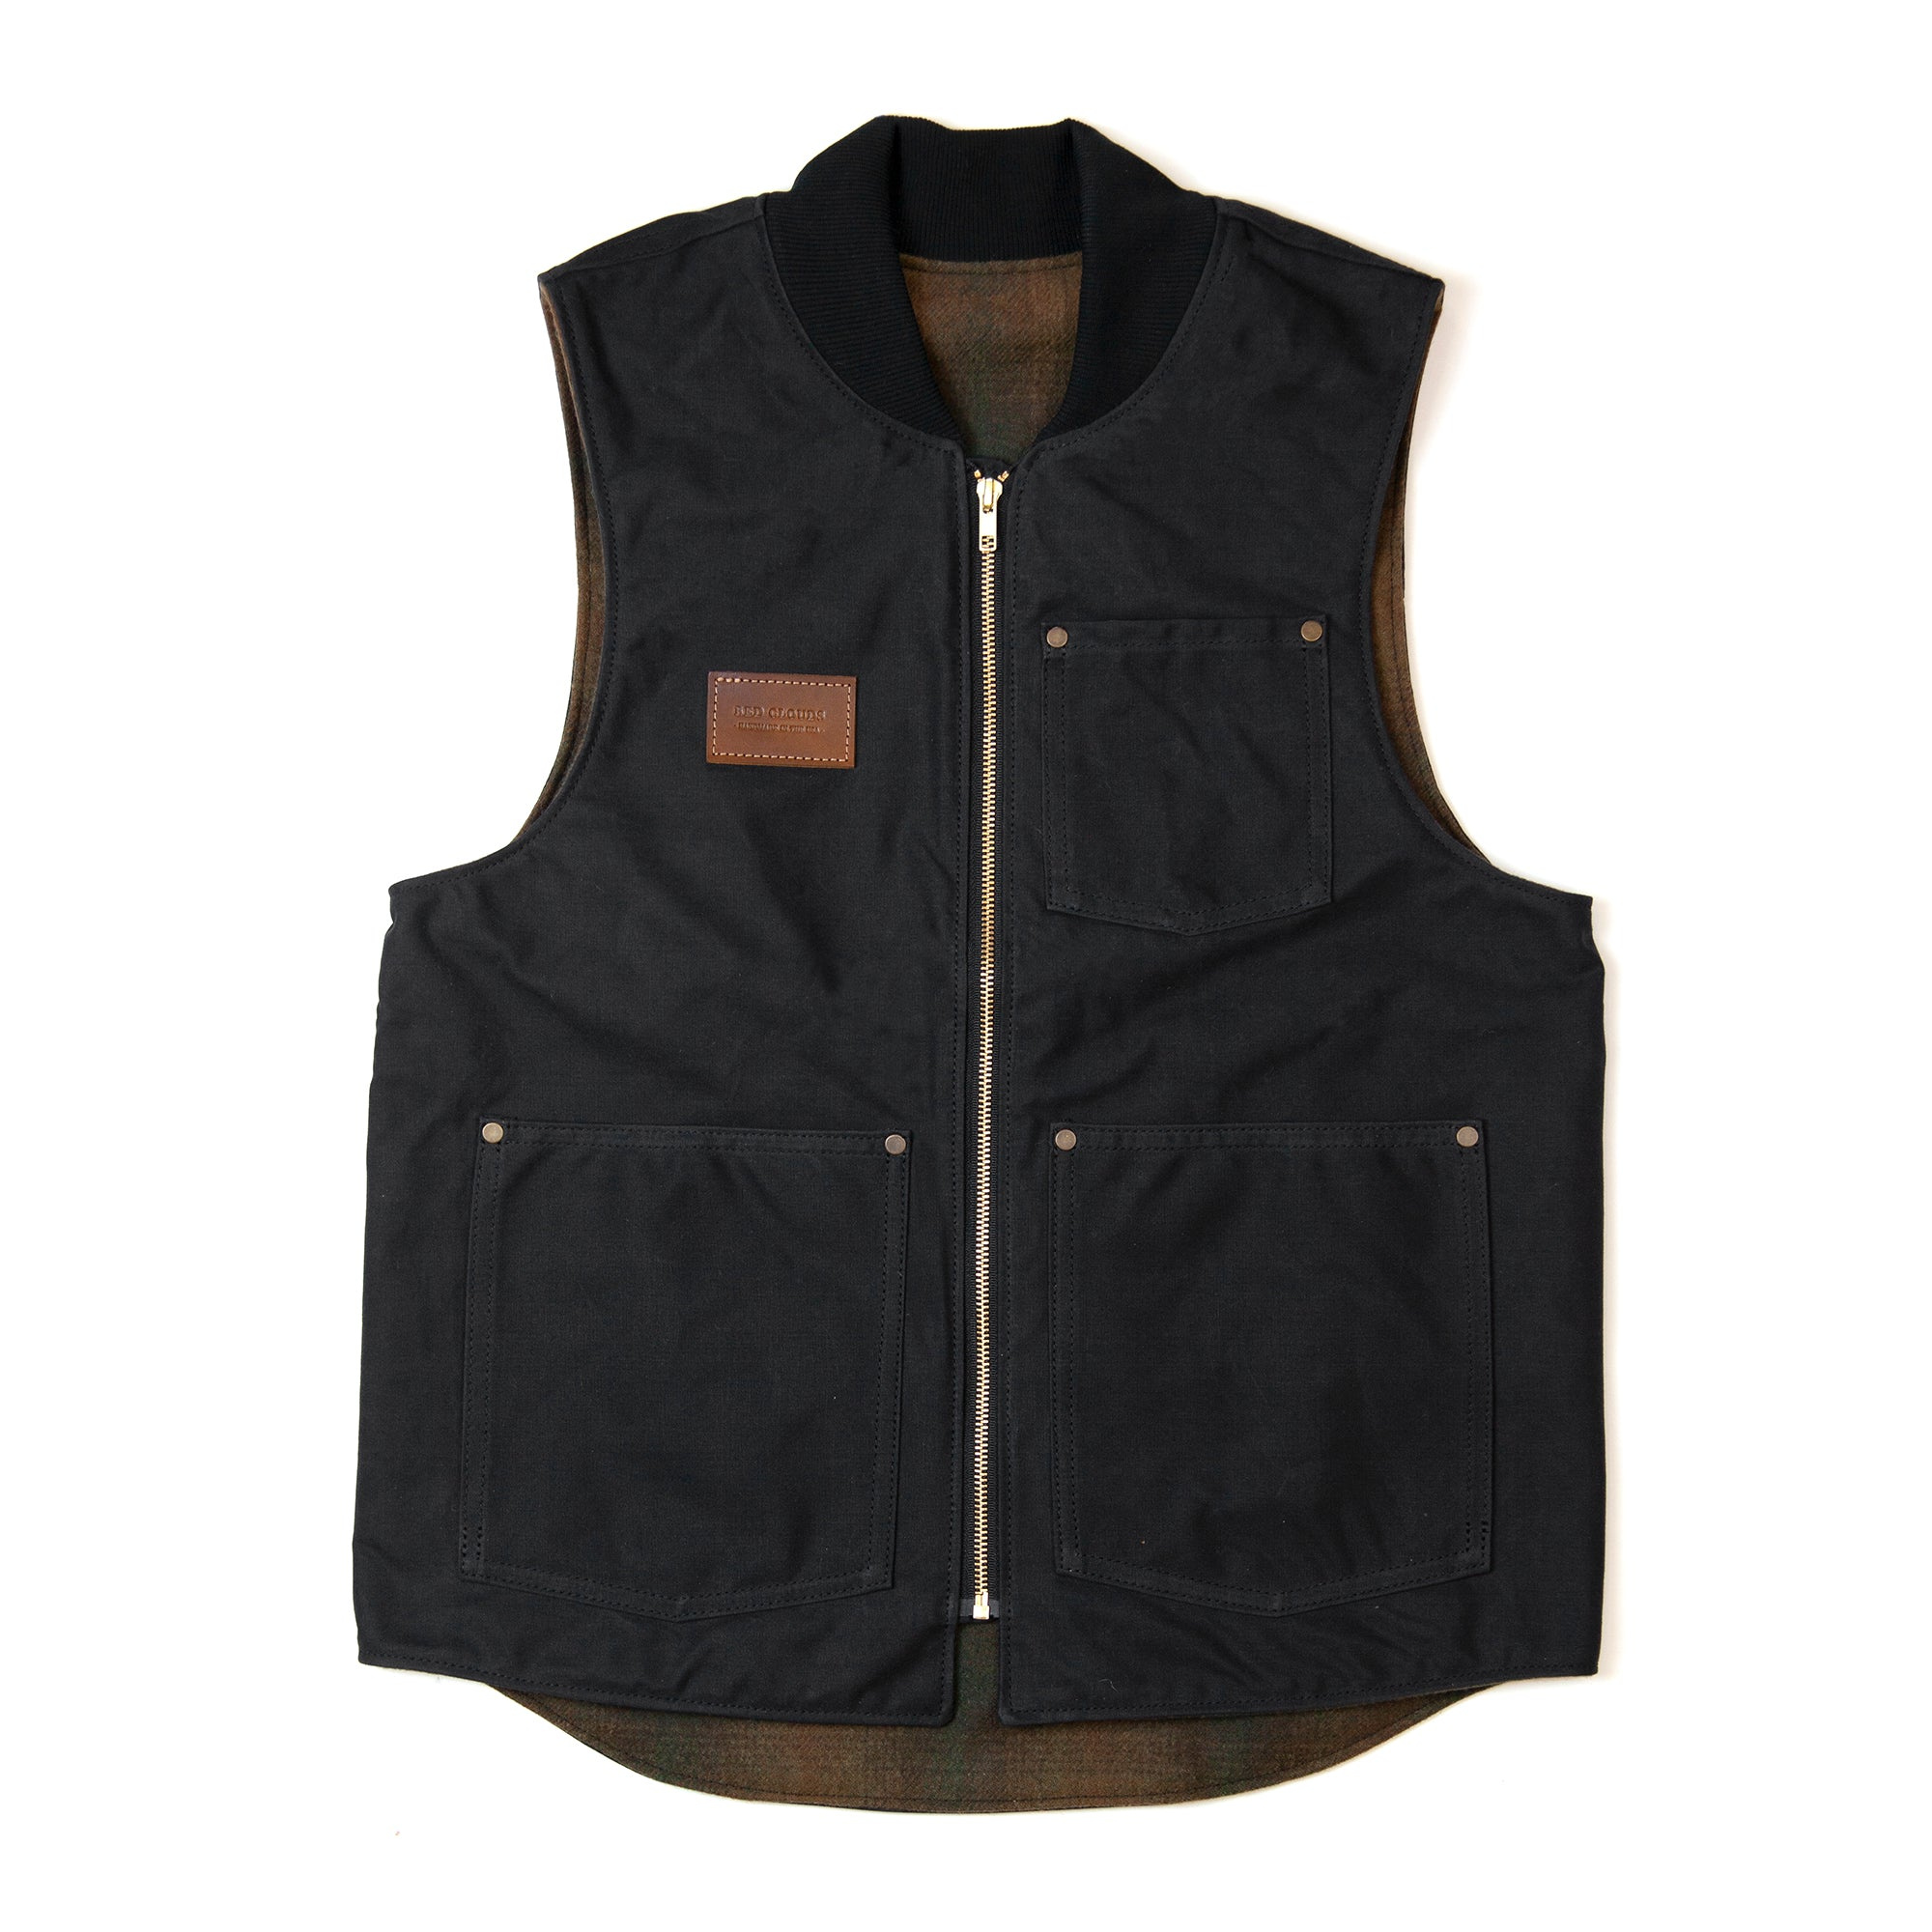 Black vest, Work vest, waxed vest, red clouds collective, moto vest, best best, riding vest, heavy duty vest, durable vest, wool vest, durable, made in usa, made in america, quality vest